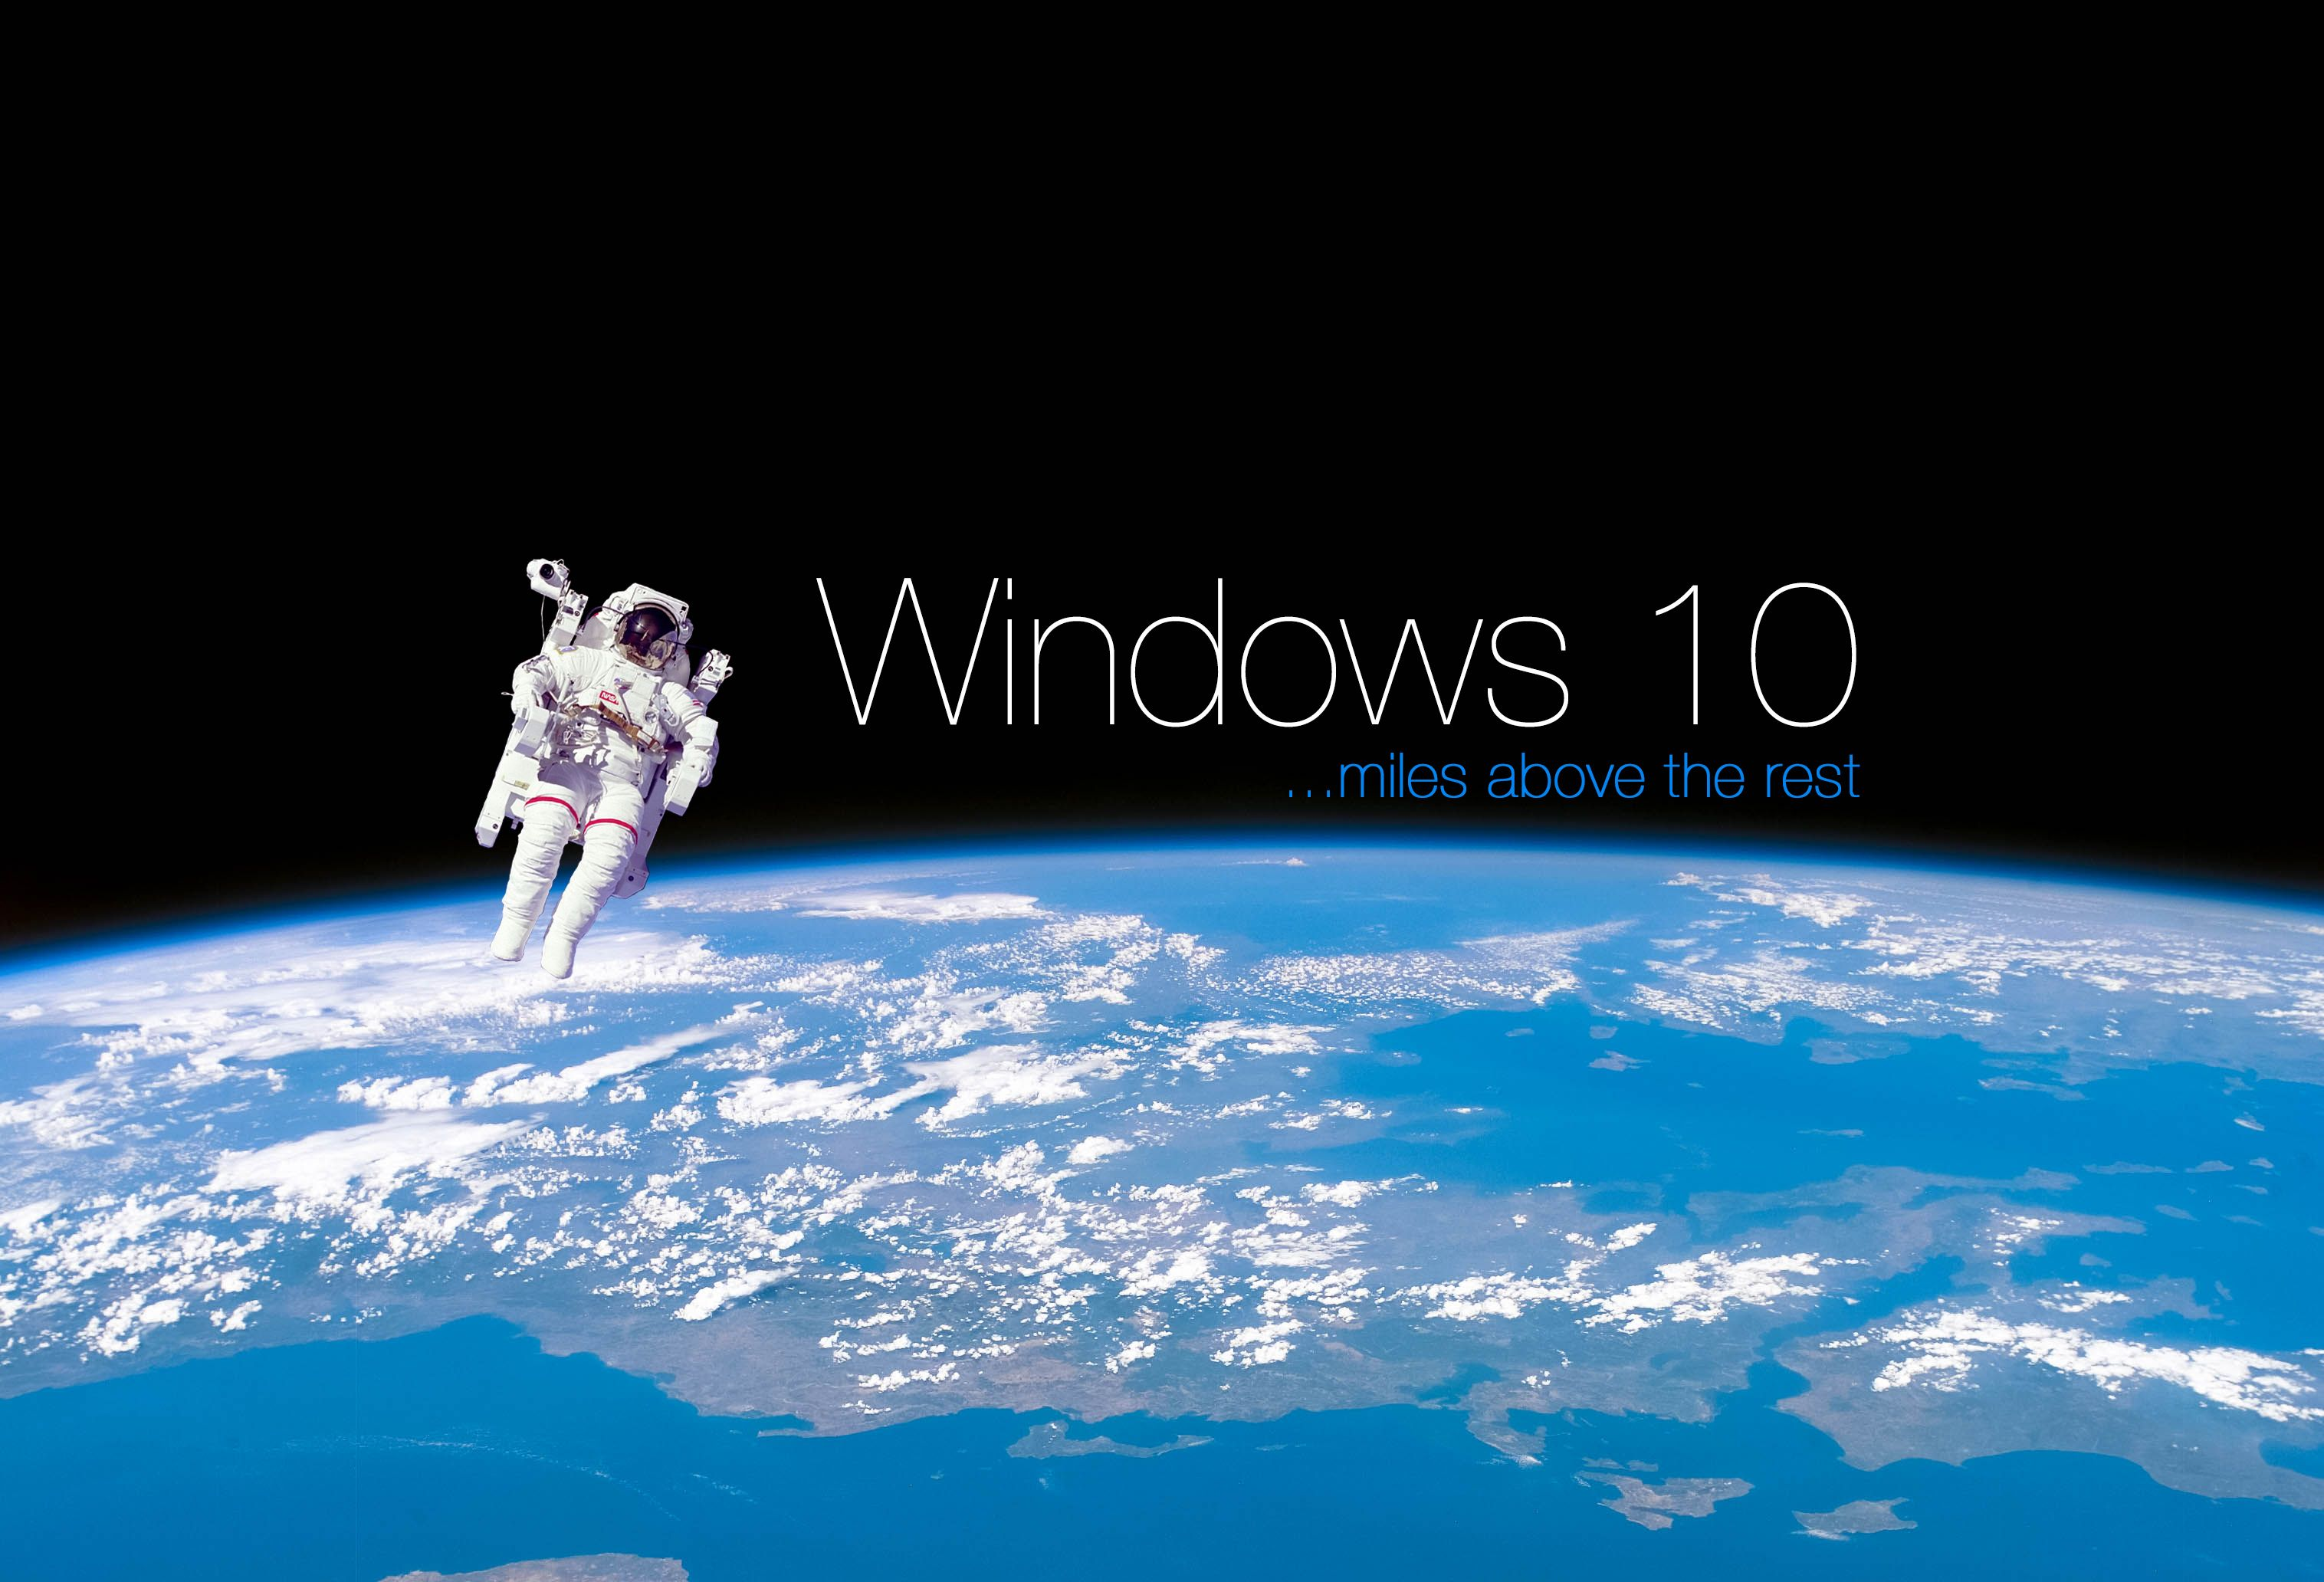 Windows 10 Will Officially Launch On July 29th 2015 Wallpaper Windows 10 Windows 10 Free Desktop Wallpaper